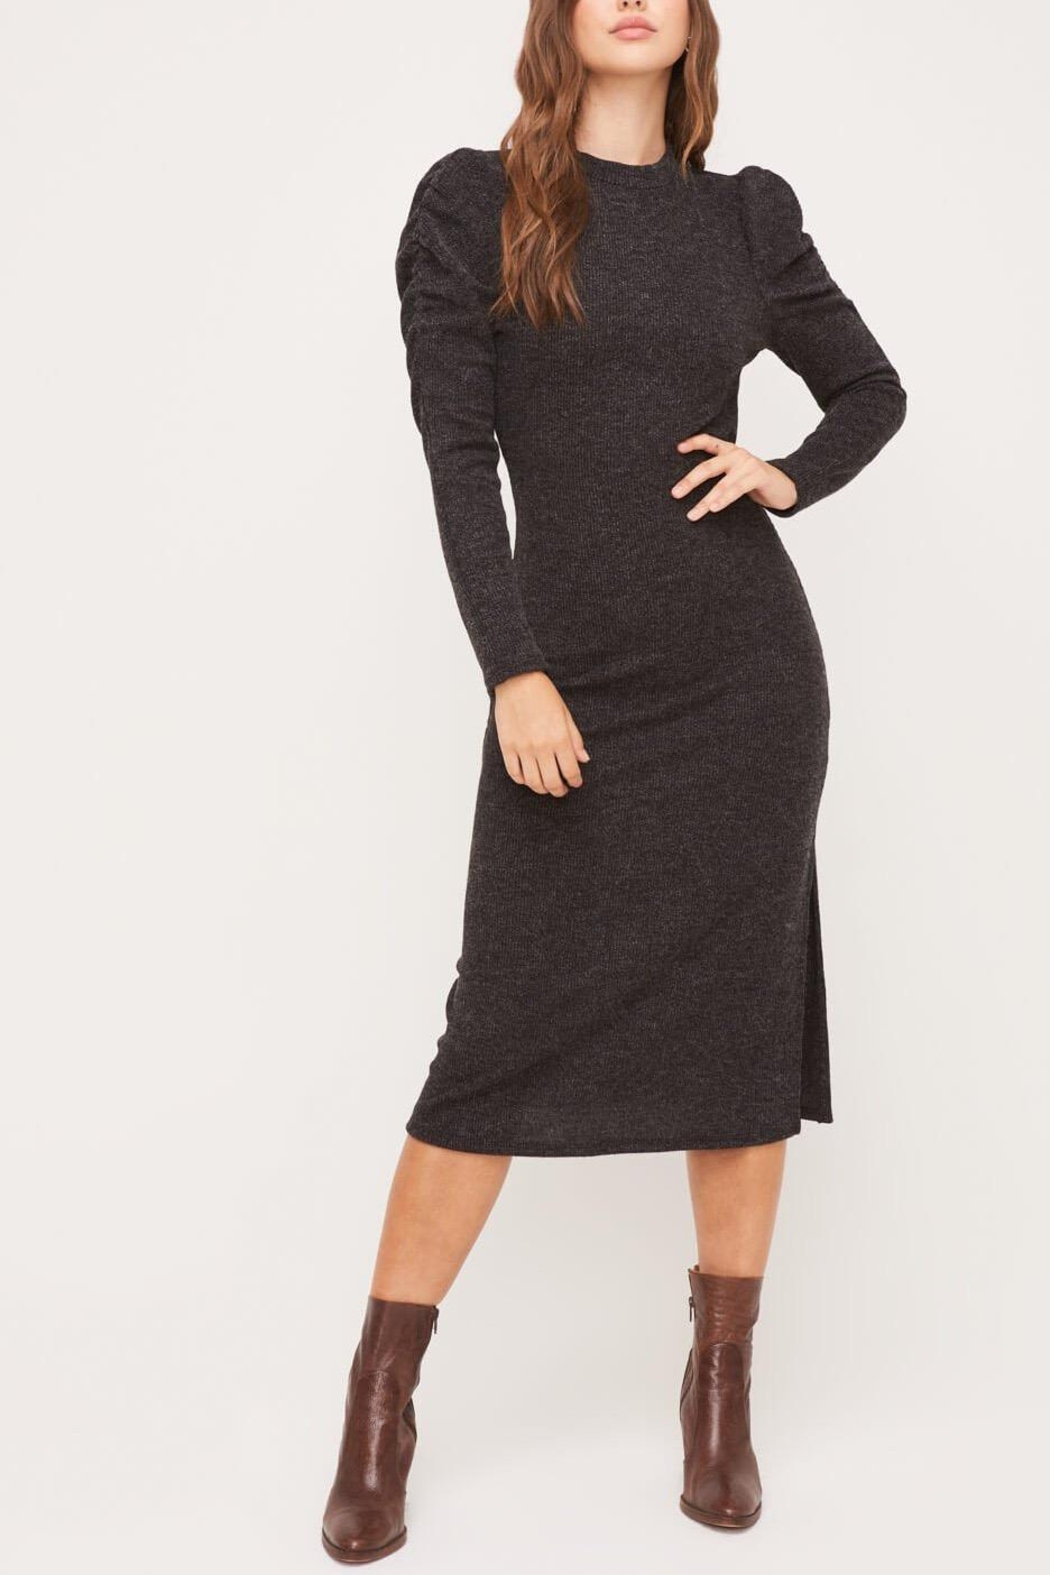 Lush Clothing  Puff-Shoulder Knit Dress - Main Image